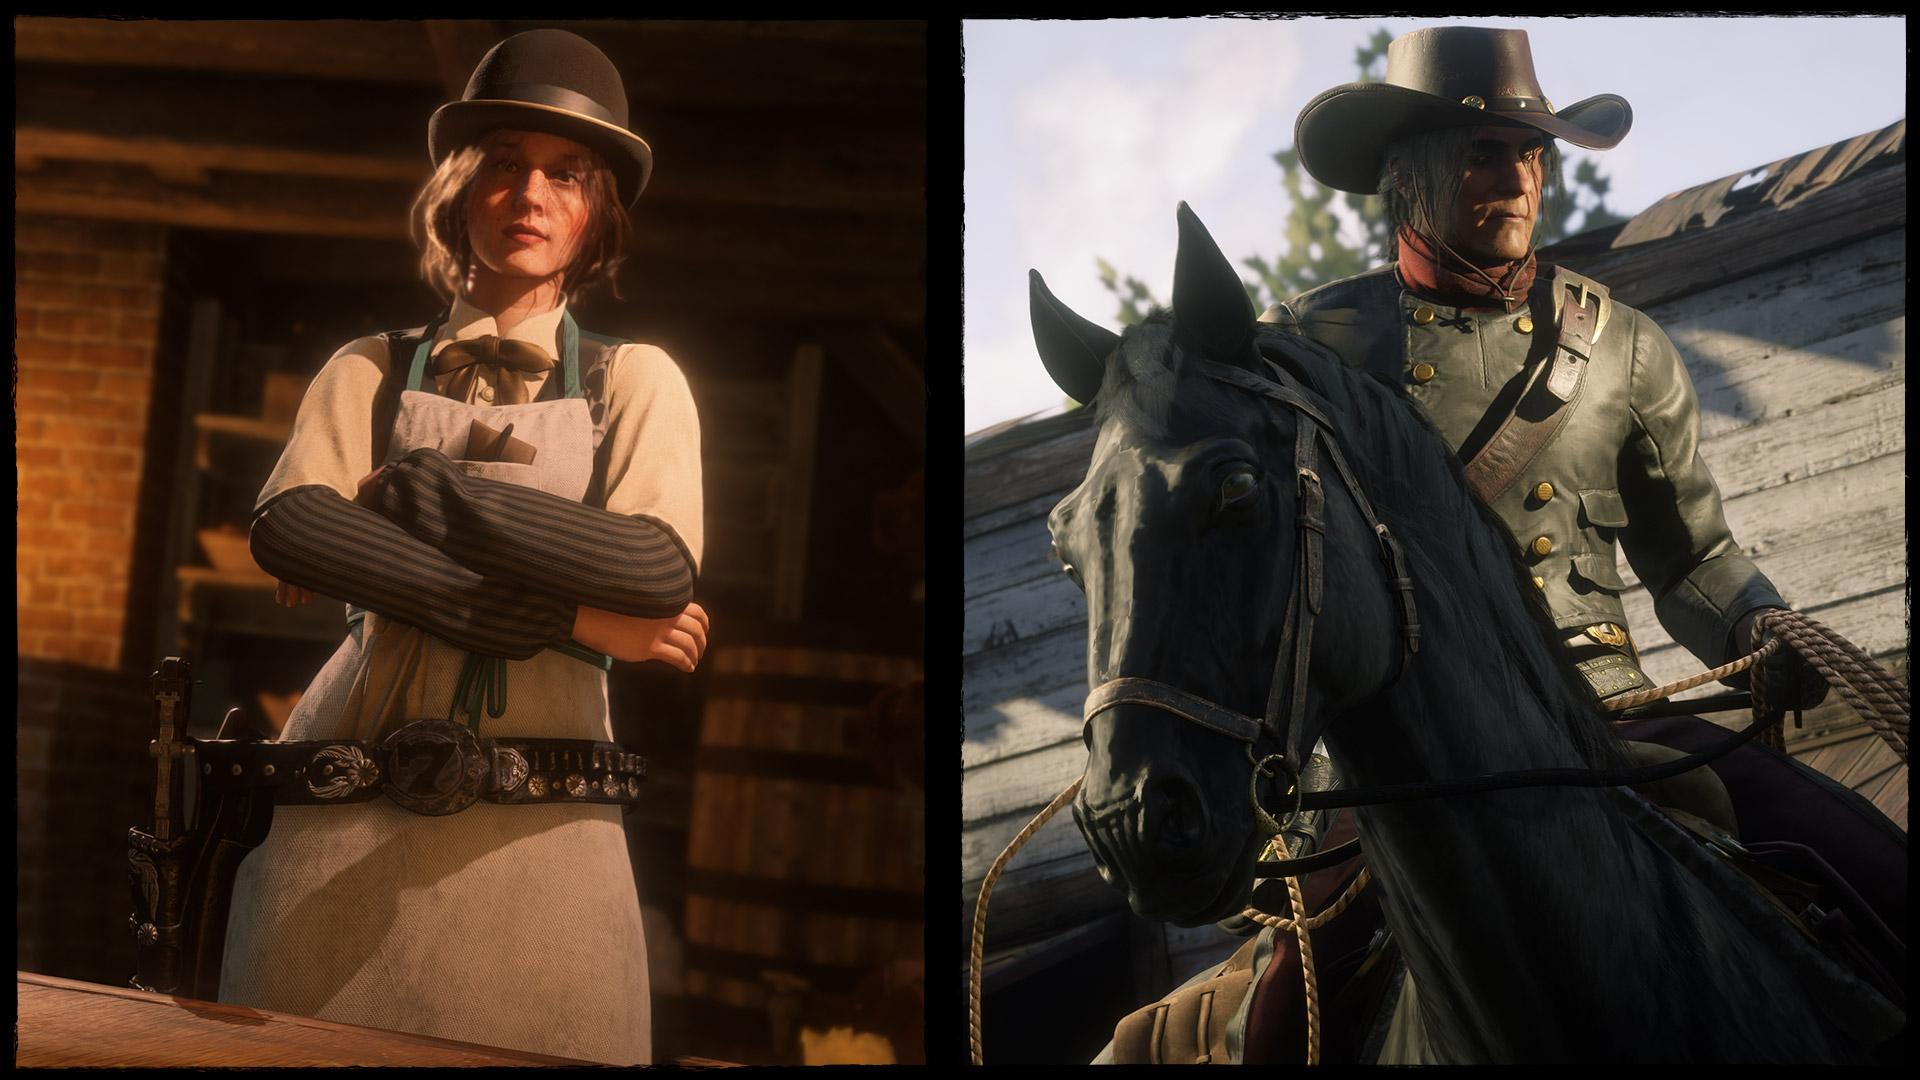 Red Dead Online: Moonshiner and Bounty Hunter Bonuses, Limited-Time Clothing & more